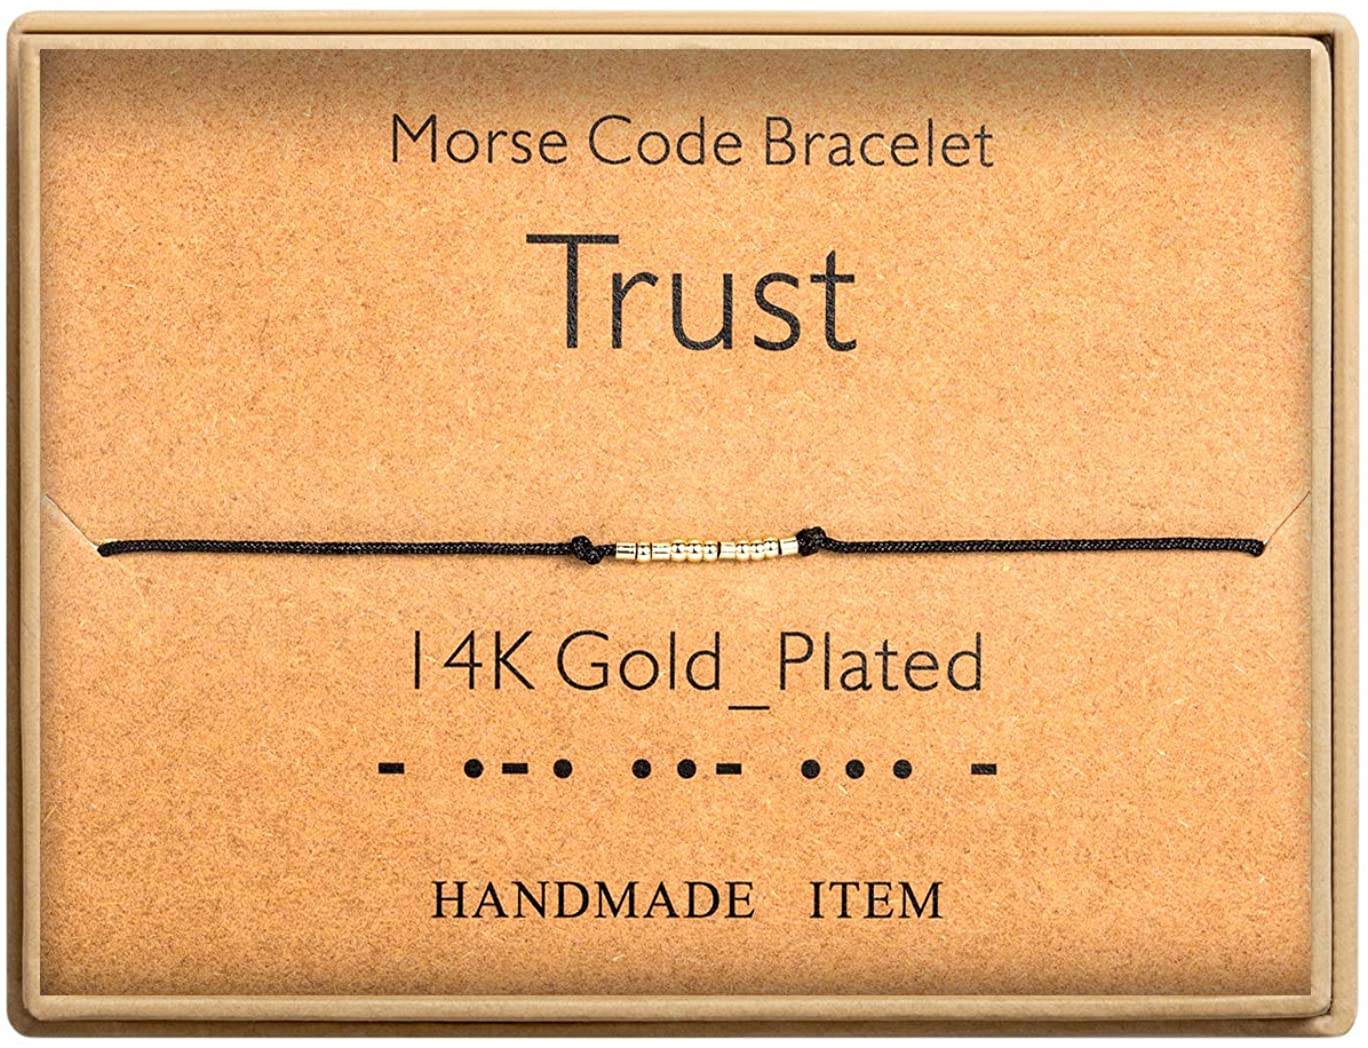 Morse Code Bracelet 14k Gold Plated Beads on Silk Cord Secret Message Trust Bracelet Gift Jewelry for Her